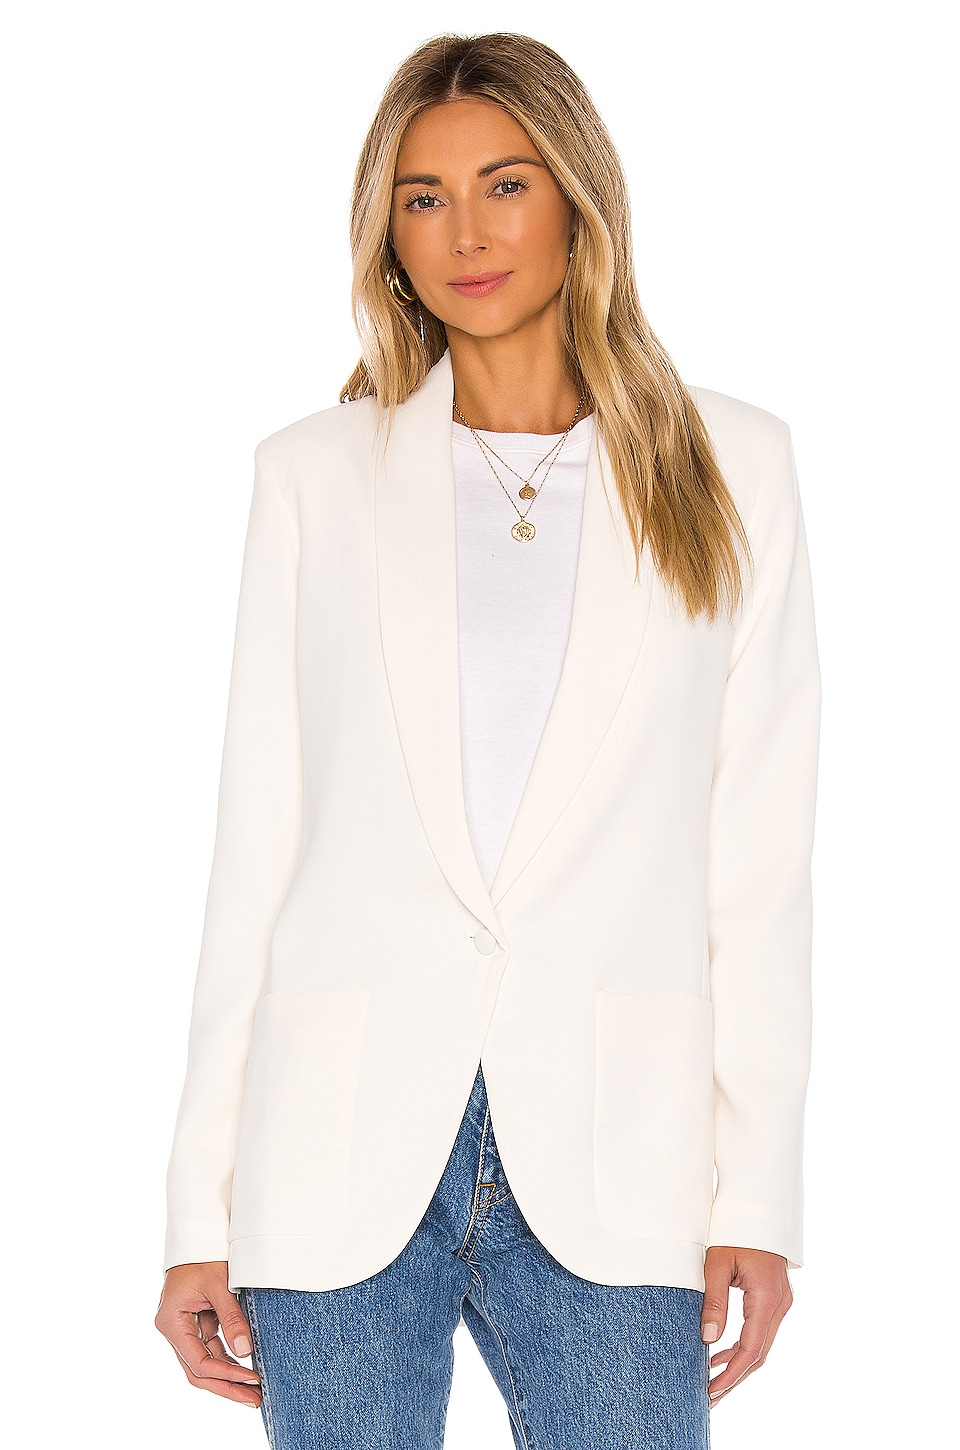 Shawl Collar Blazer, view 2, click to view large image.